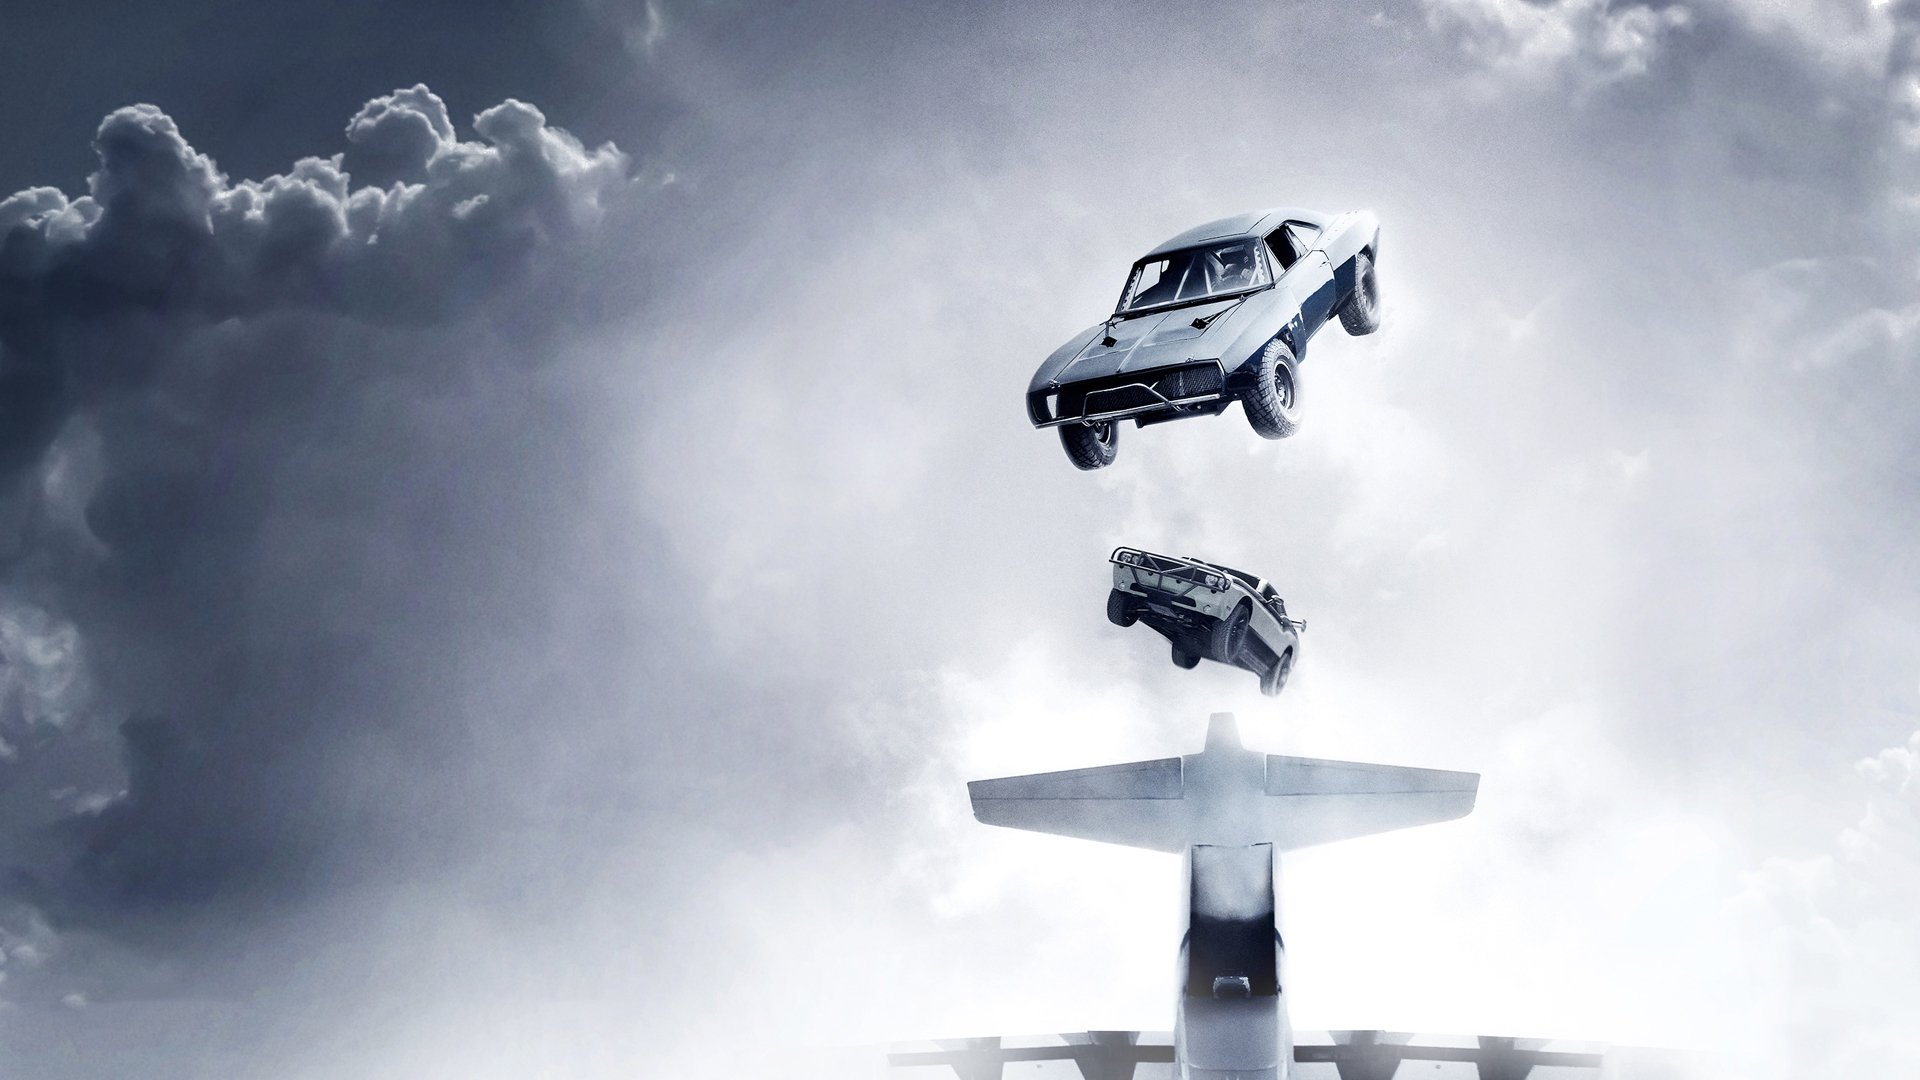 Fast And Furious Hd Wallpaper Background: Velozes & Furiosos 7 Papel De Parede HD